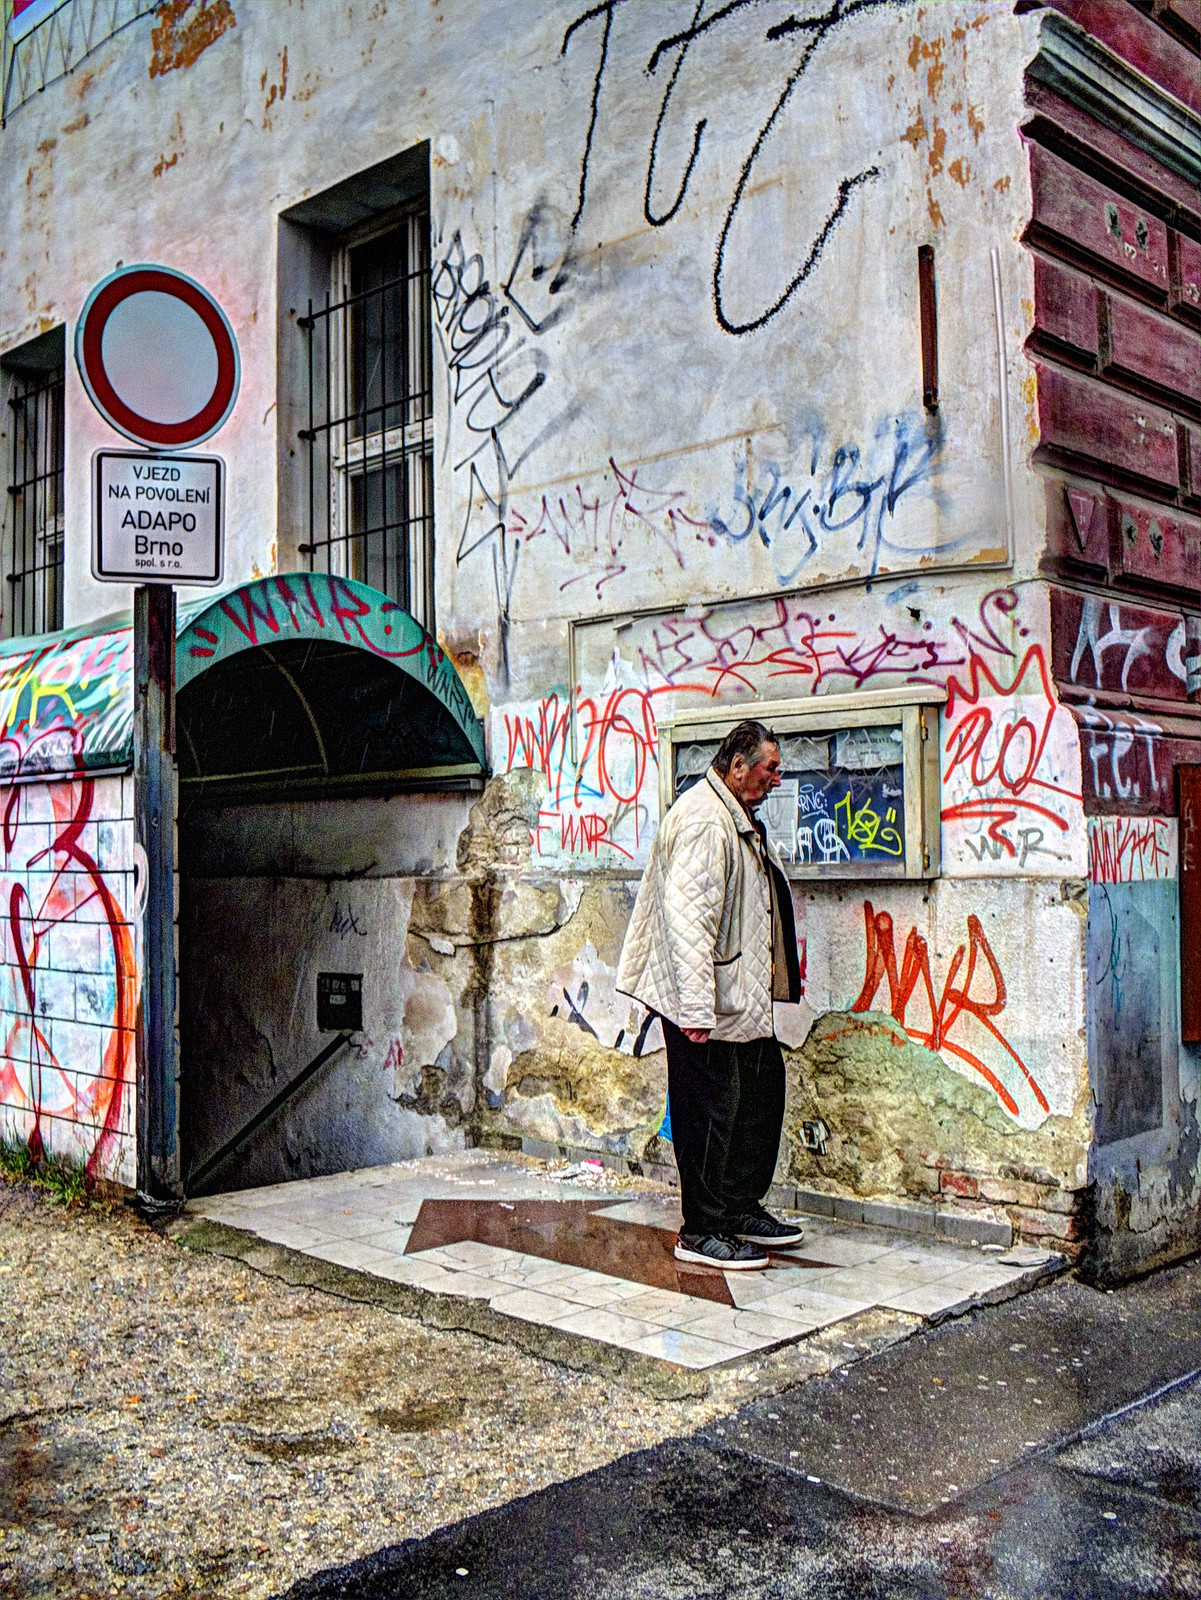 Elderly Man Surrounded by Graffitis - Surreal Version